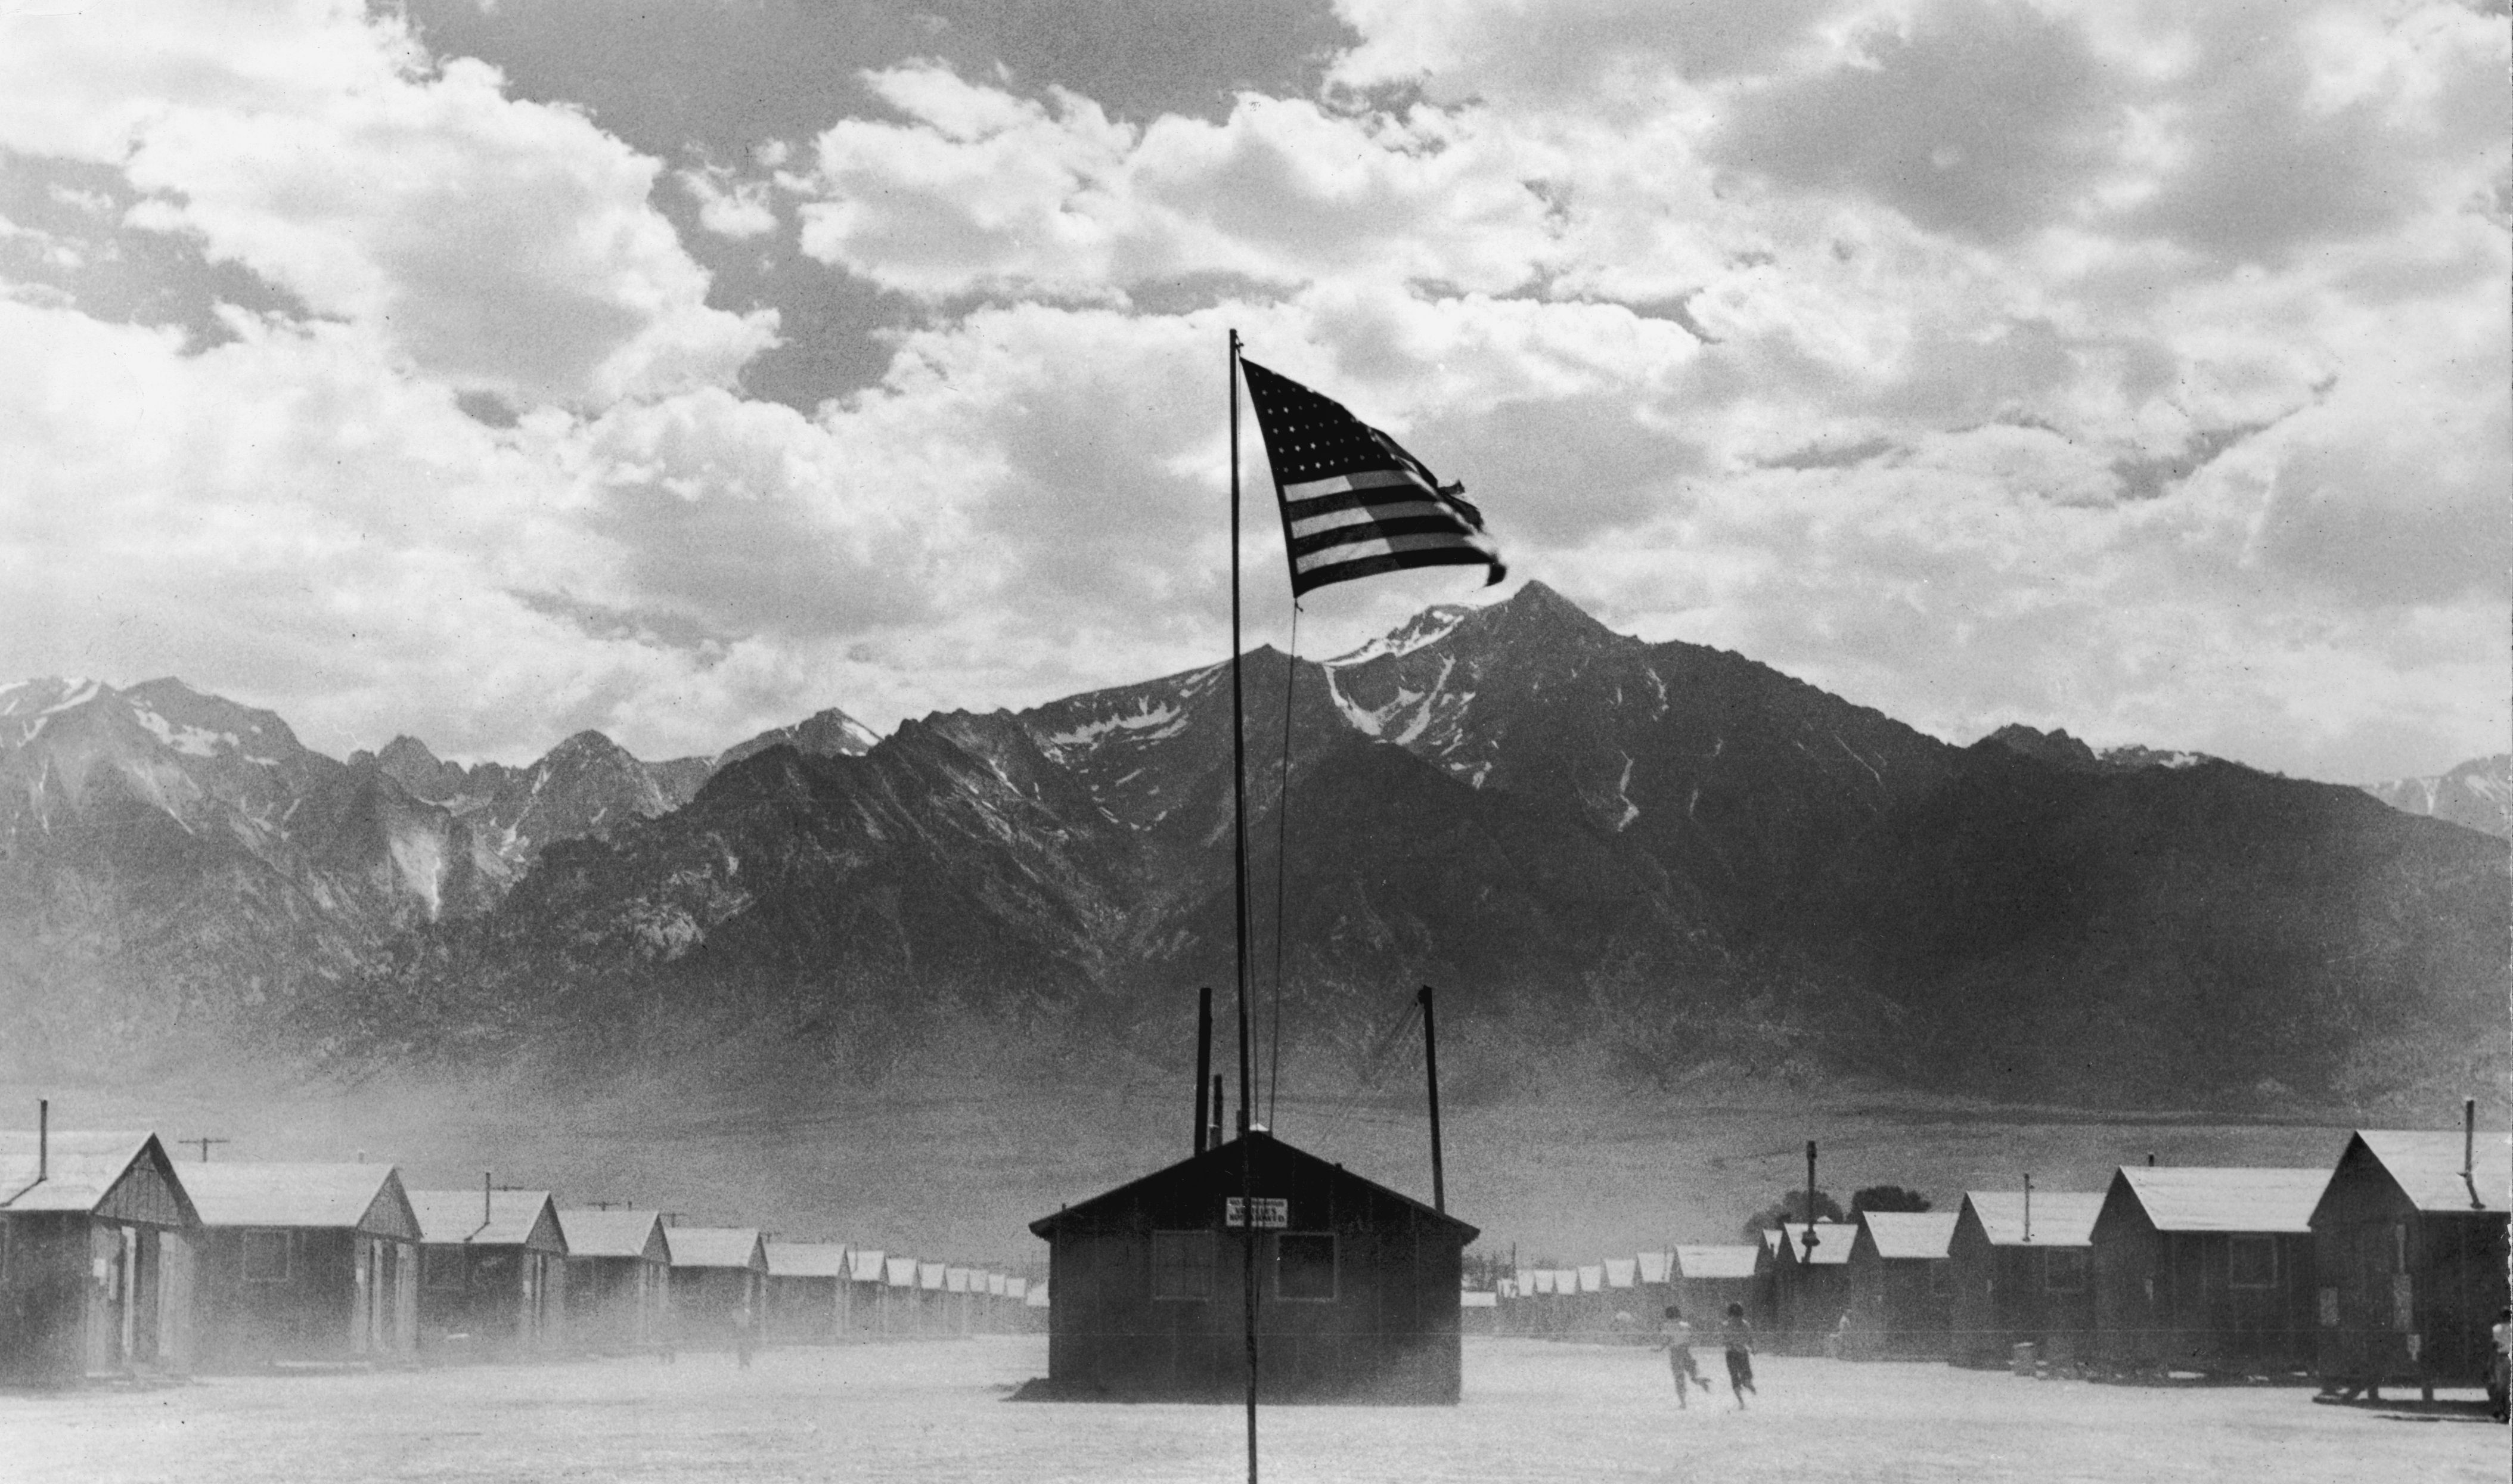 More than 75 years later, California will officially apologize for mistreating Japanese Americans